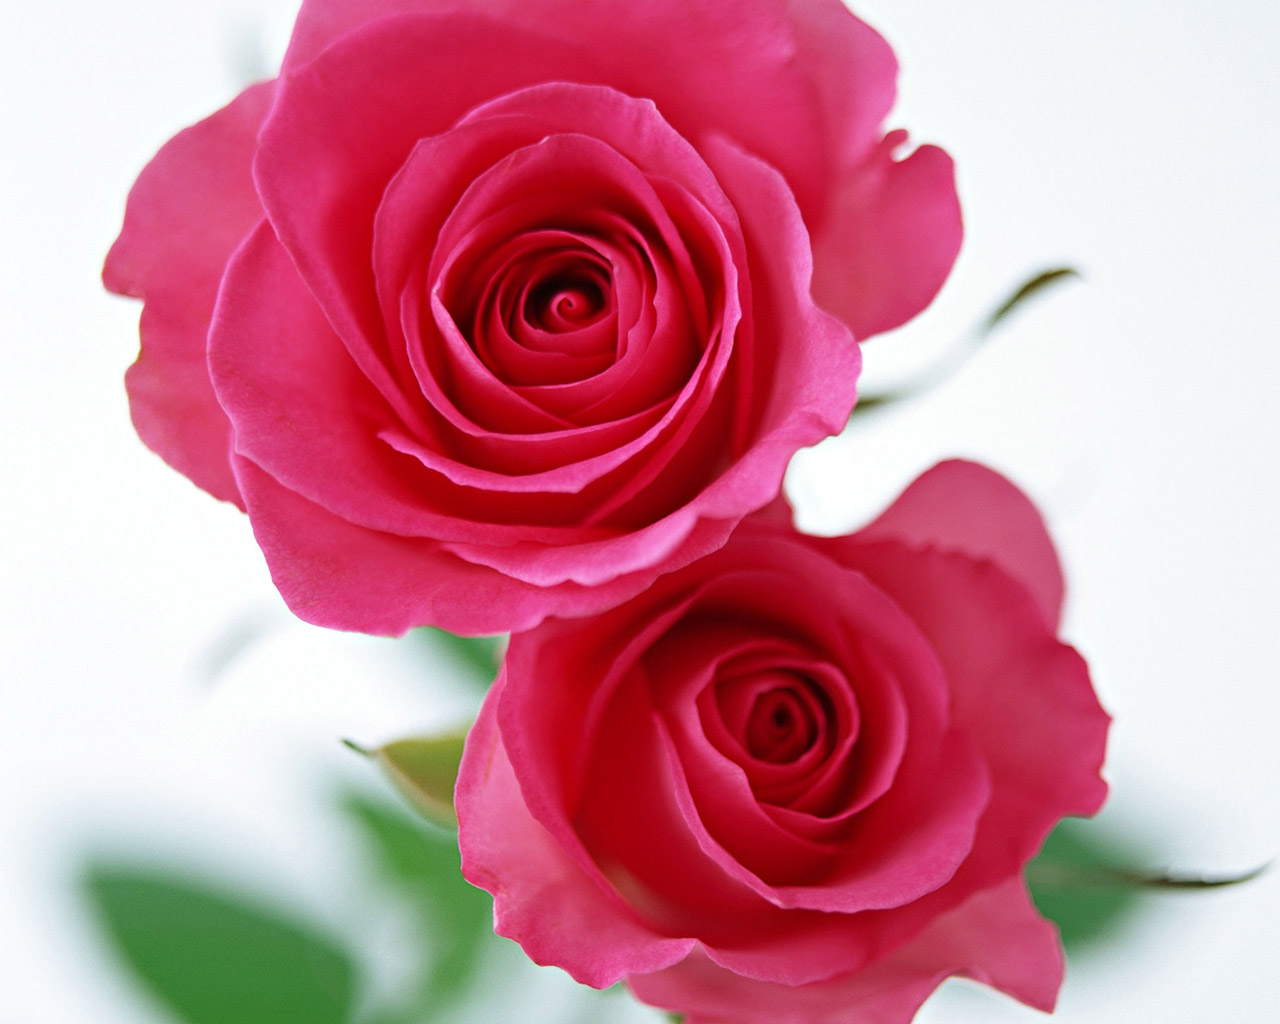 Rose Wallpaper 5112